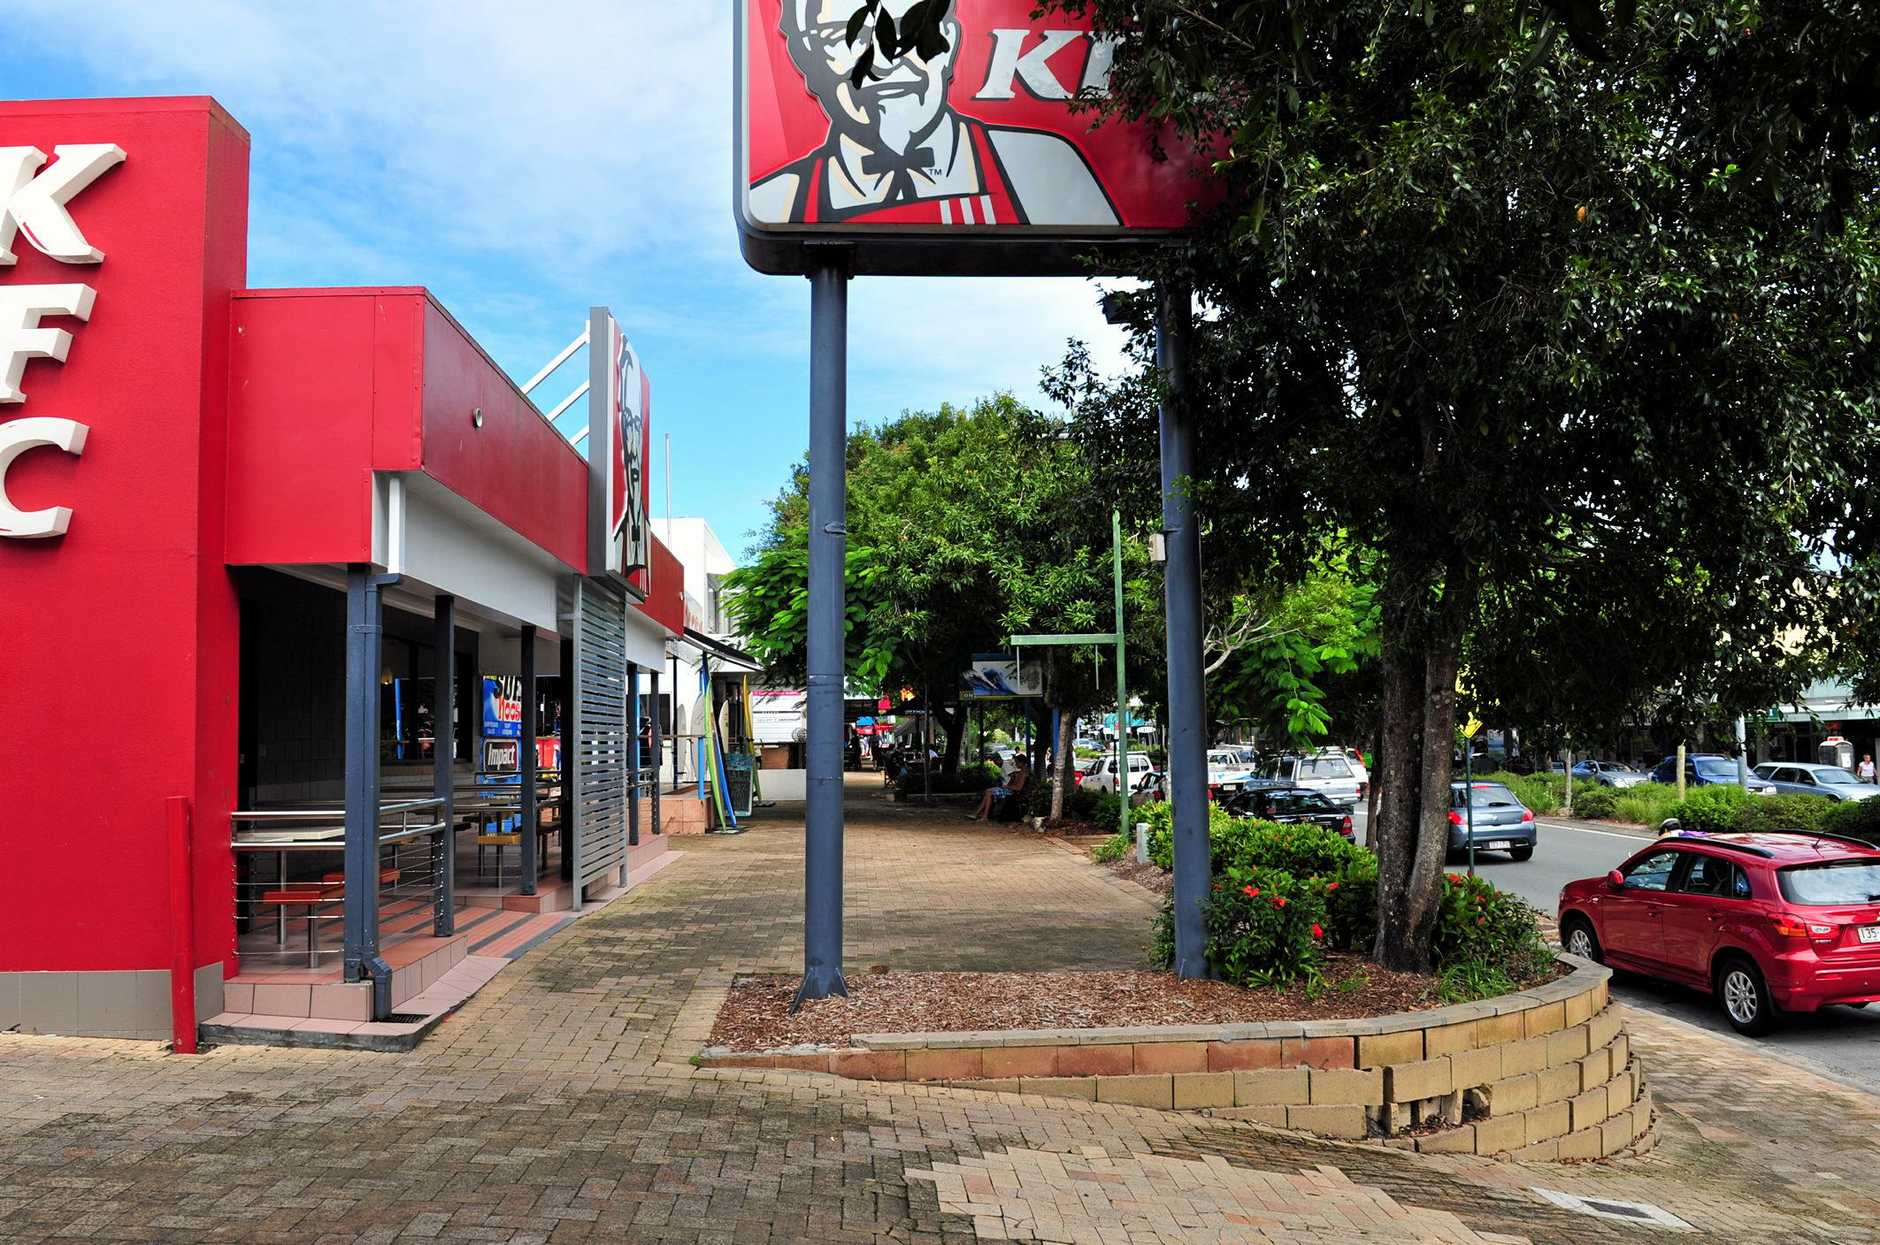 Noosa residents are down to their last finger licking fix with Kentucky Fried Chicken closing its doors at Noosa Junction.